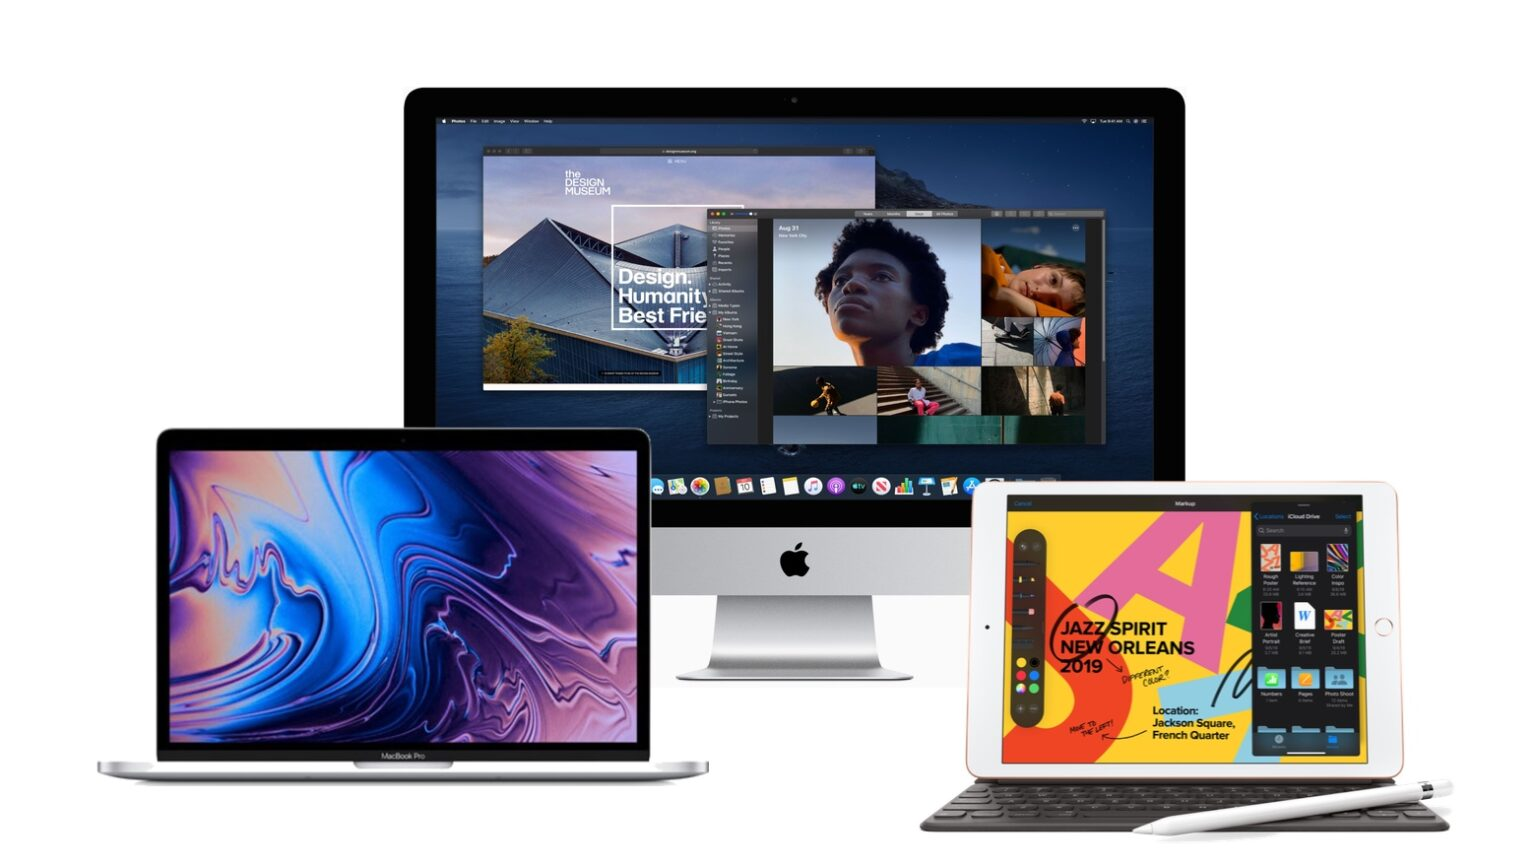 MacBook, iMac and iPad are all computers